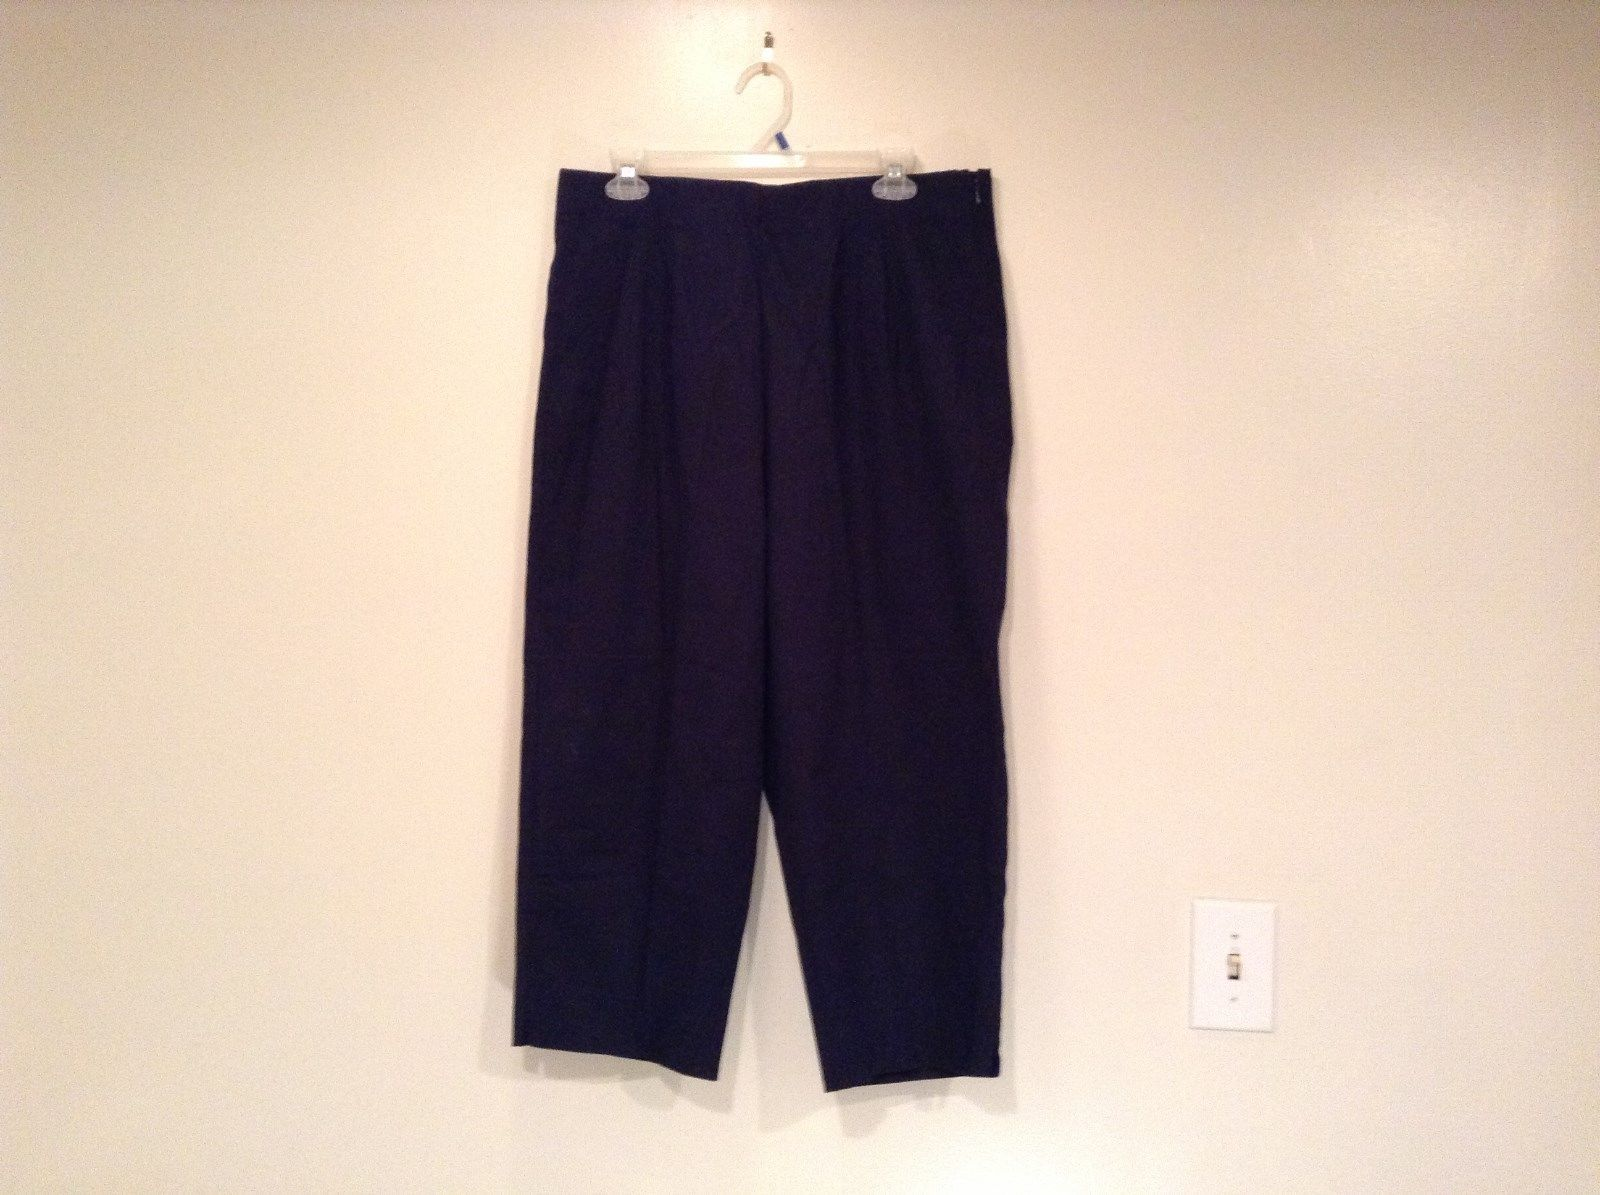 Dark Blue Briggs New York Size 16W Capri Pants Side Zipper Closure Cotton Blend